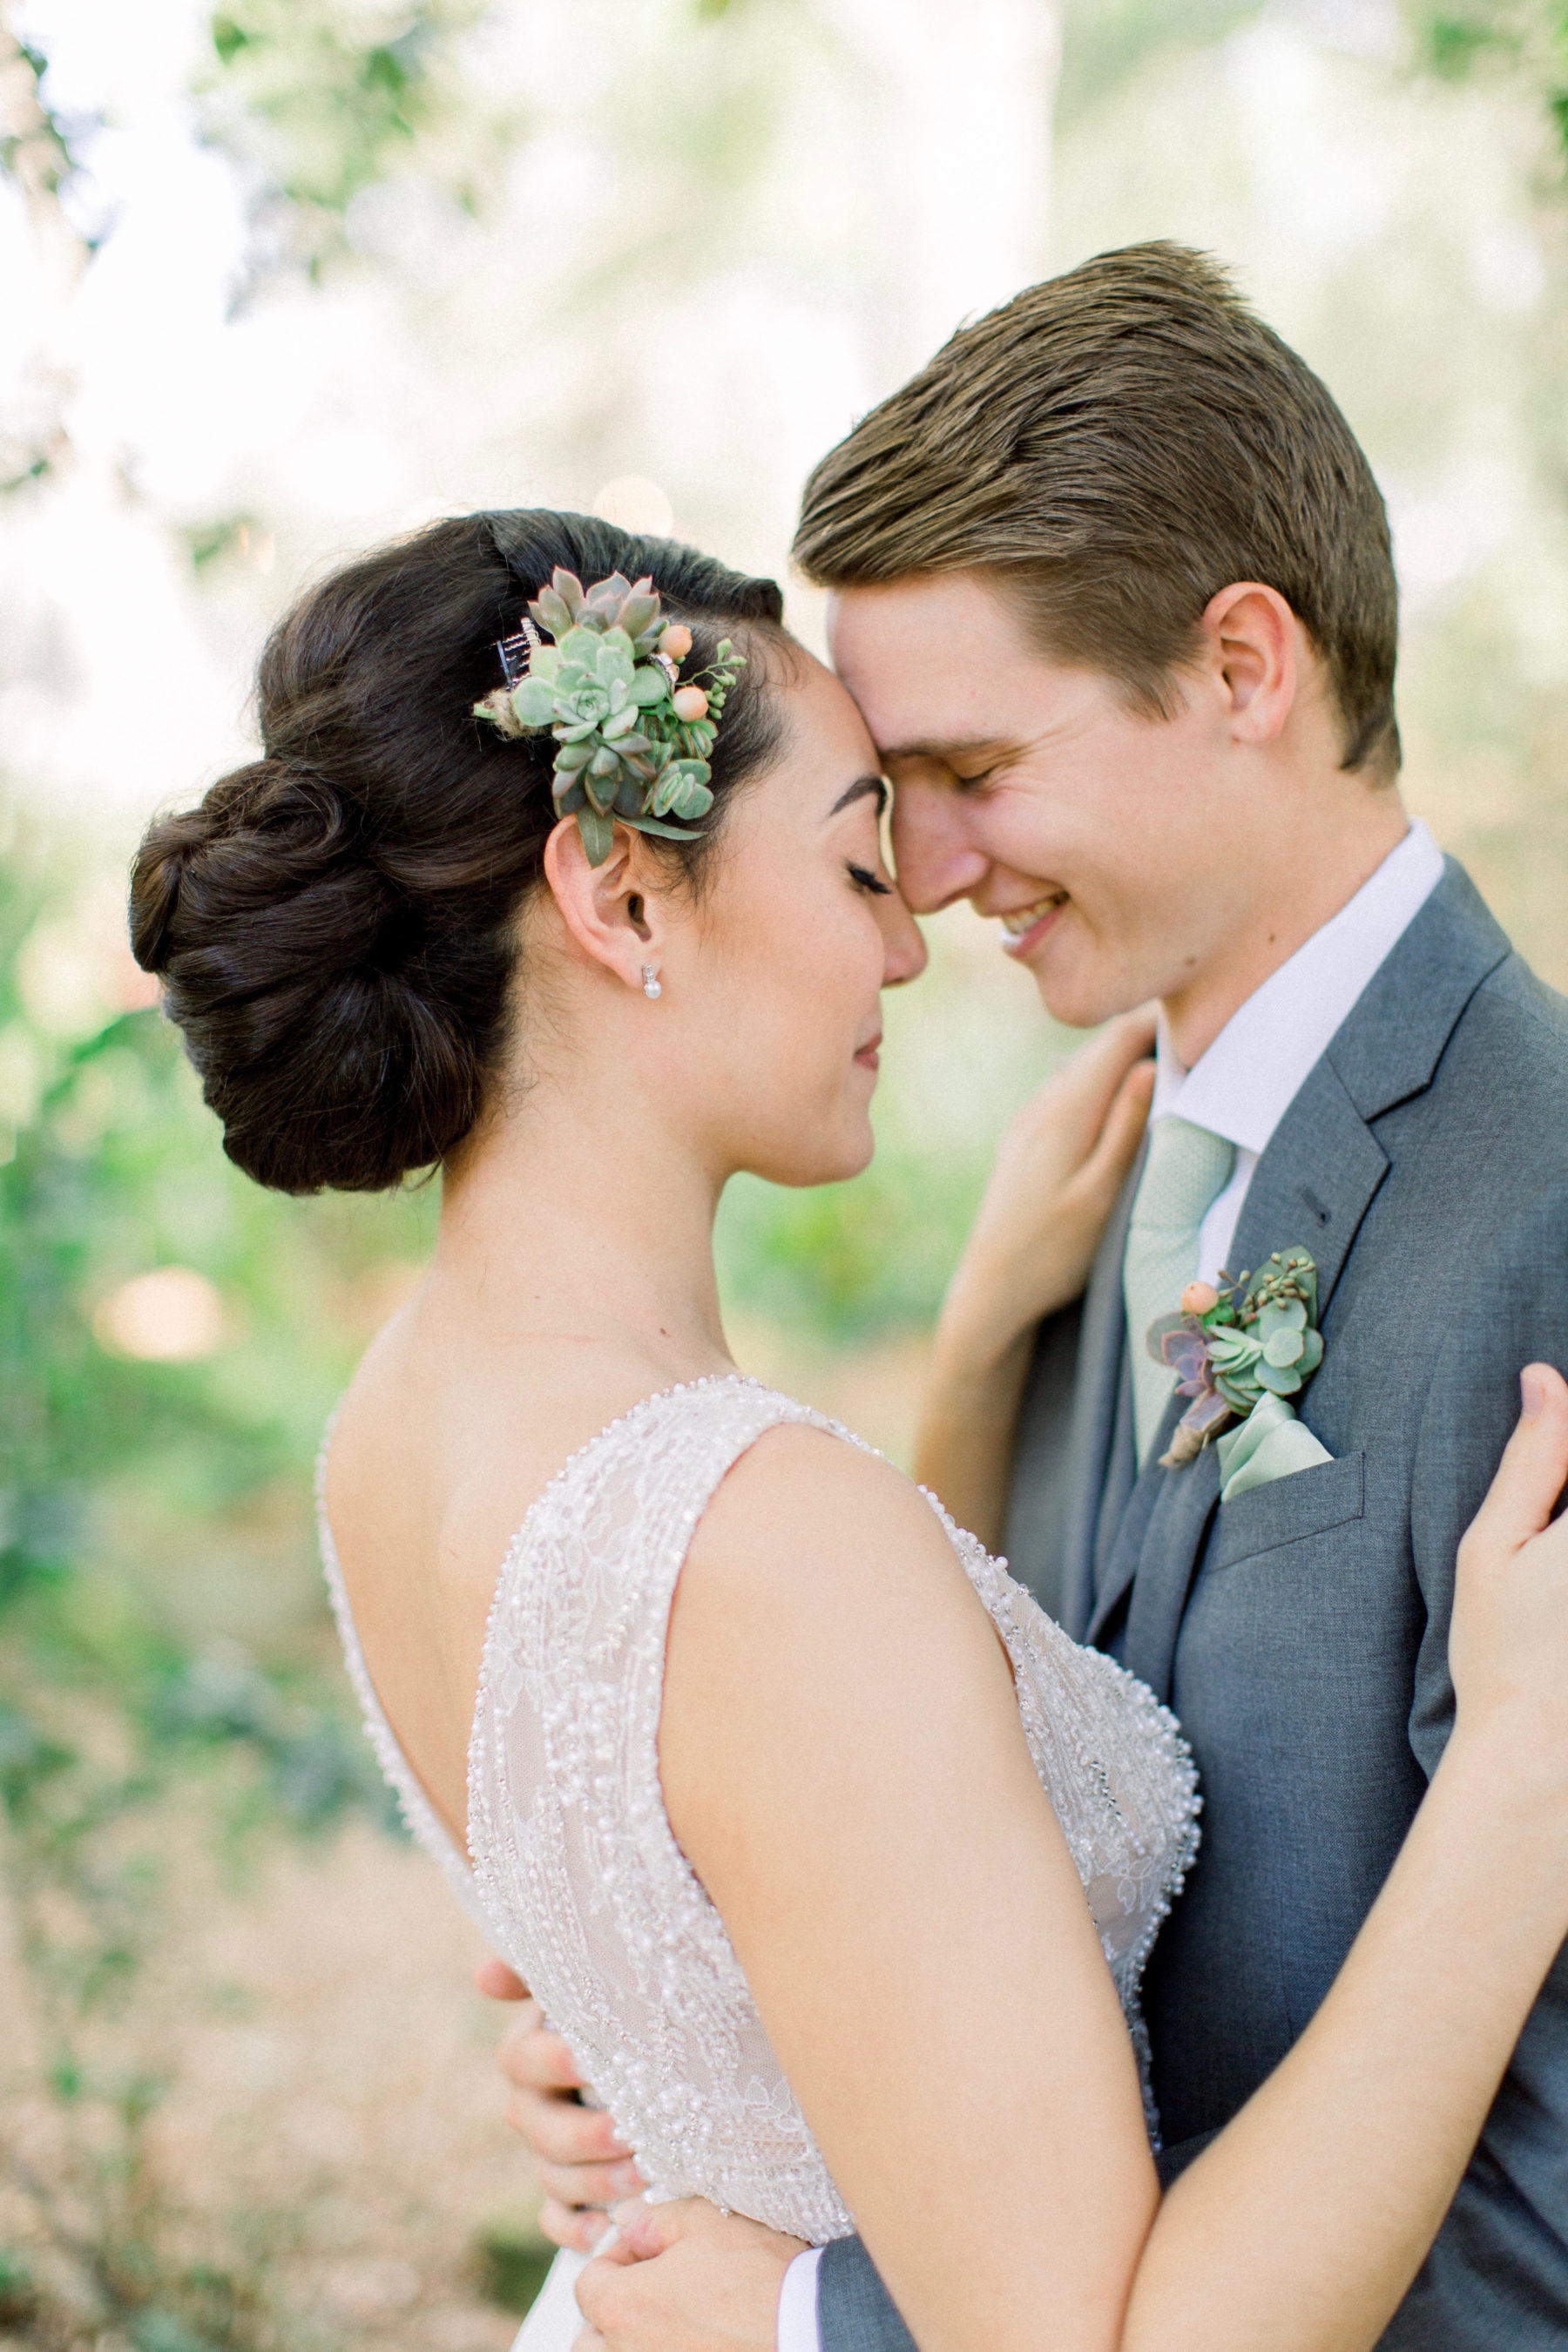 Couple touching noses, bride with an updo and succulent in her brown hair.